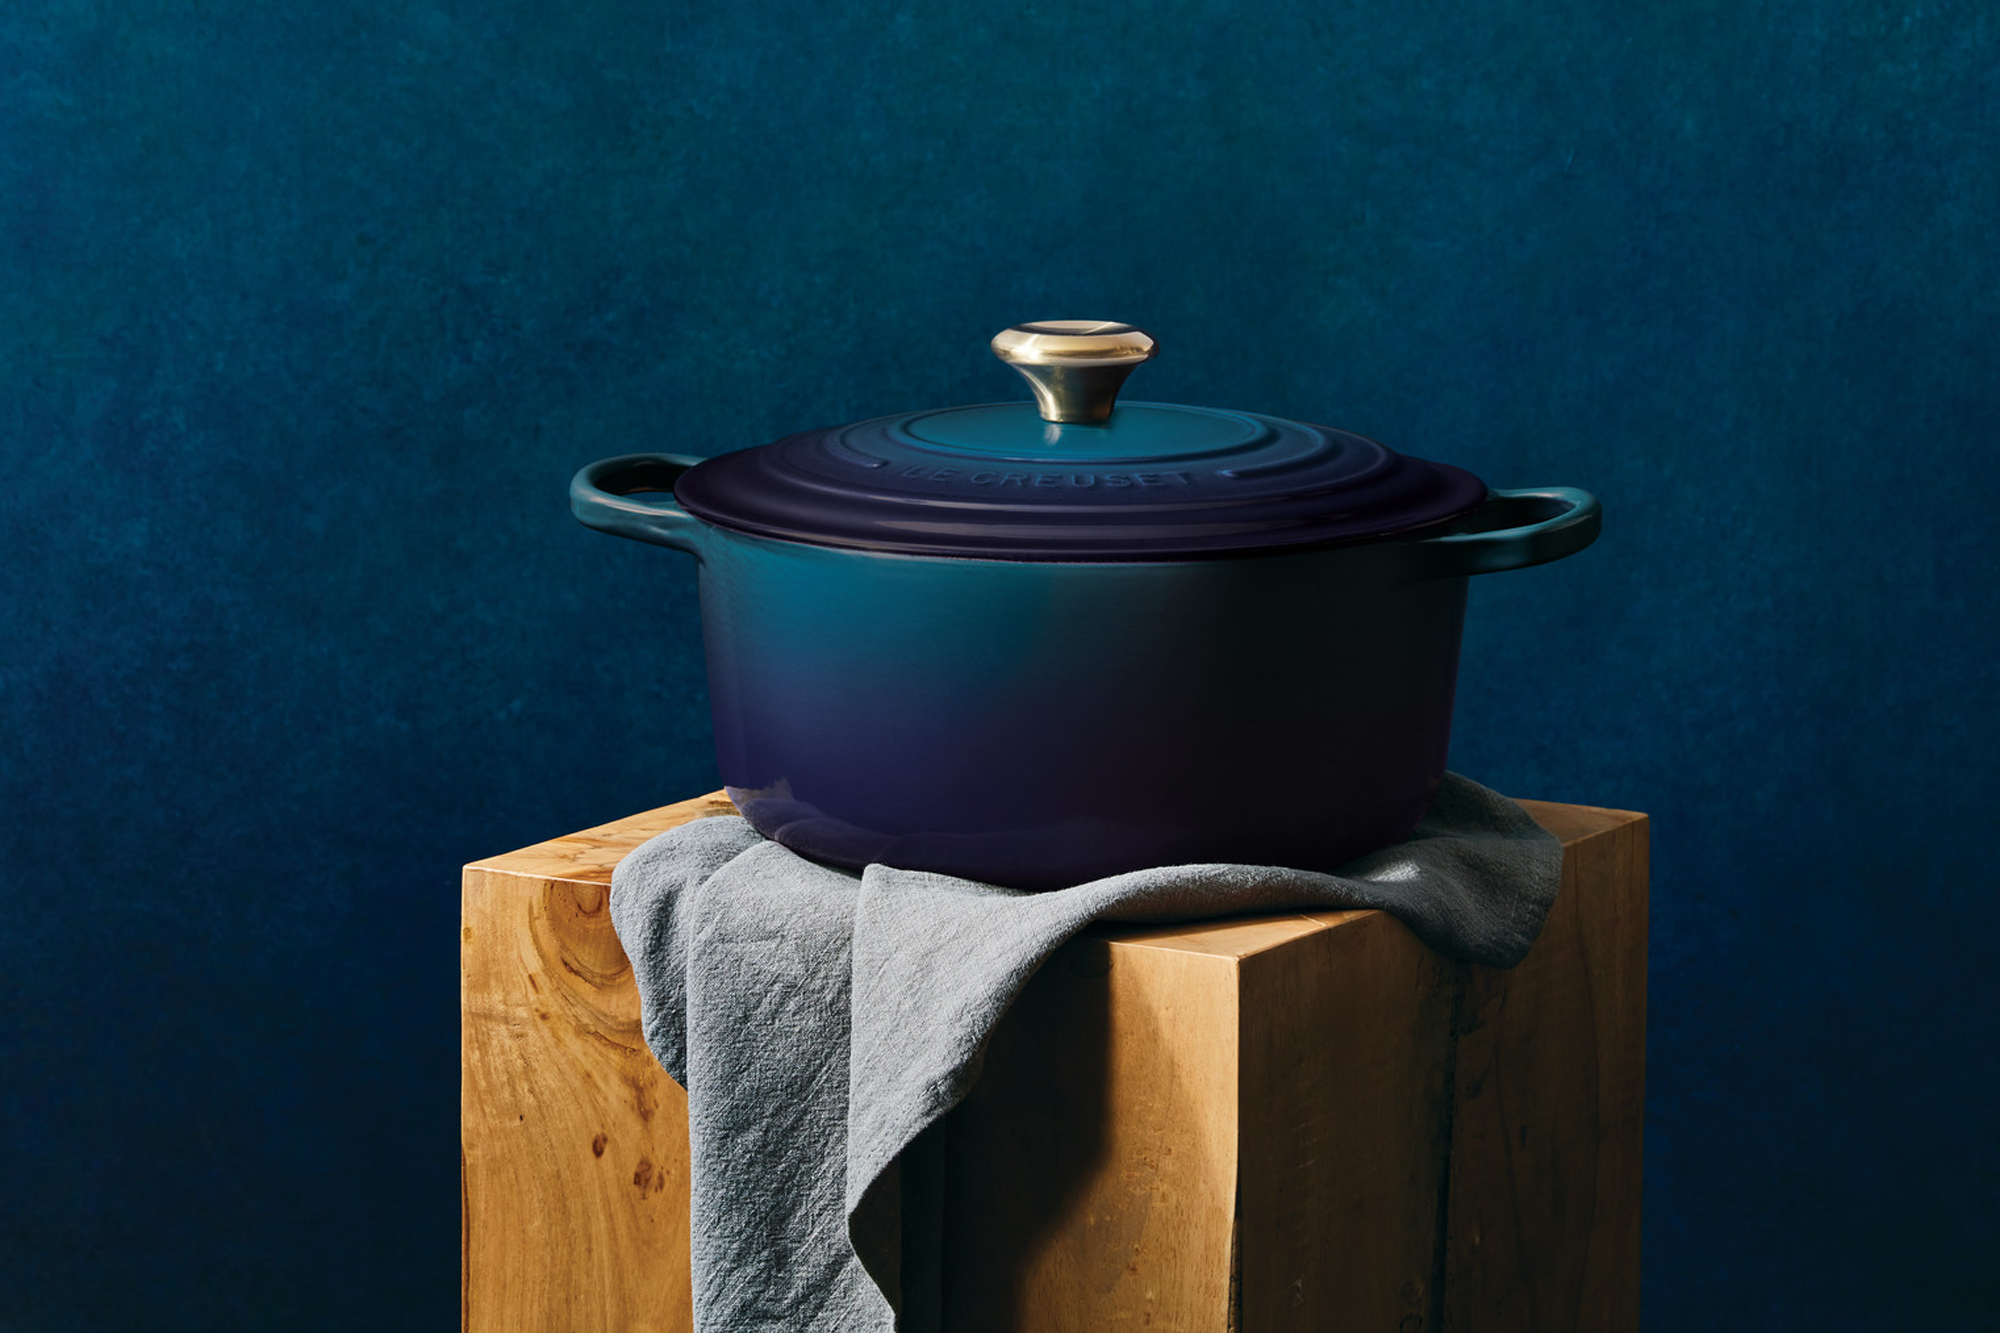 debut of new color from le creuset, agave